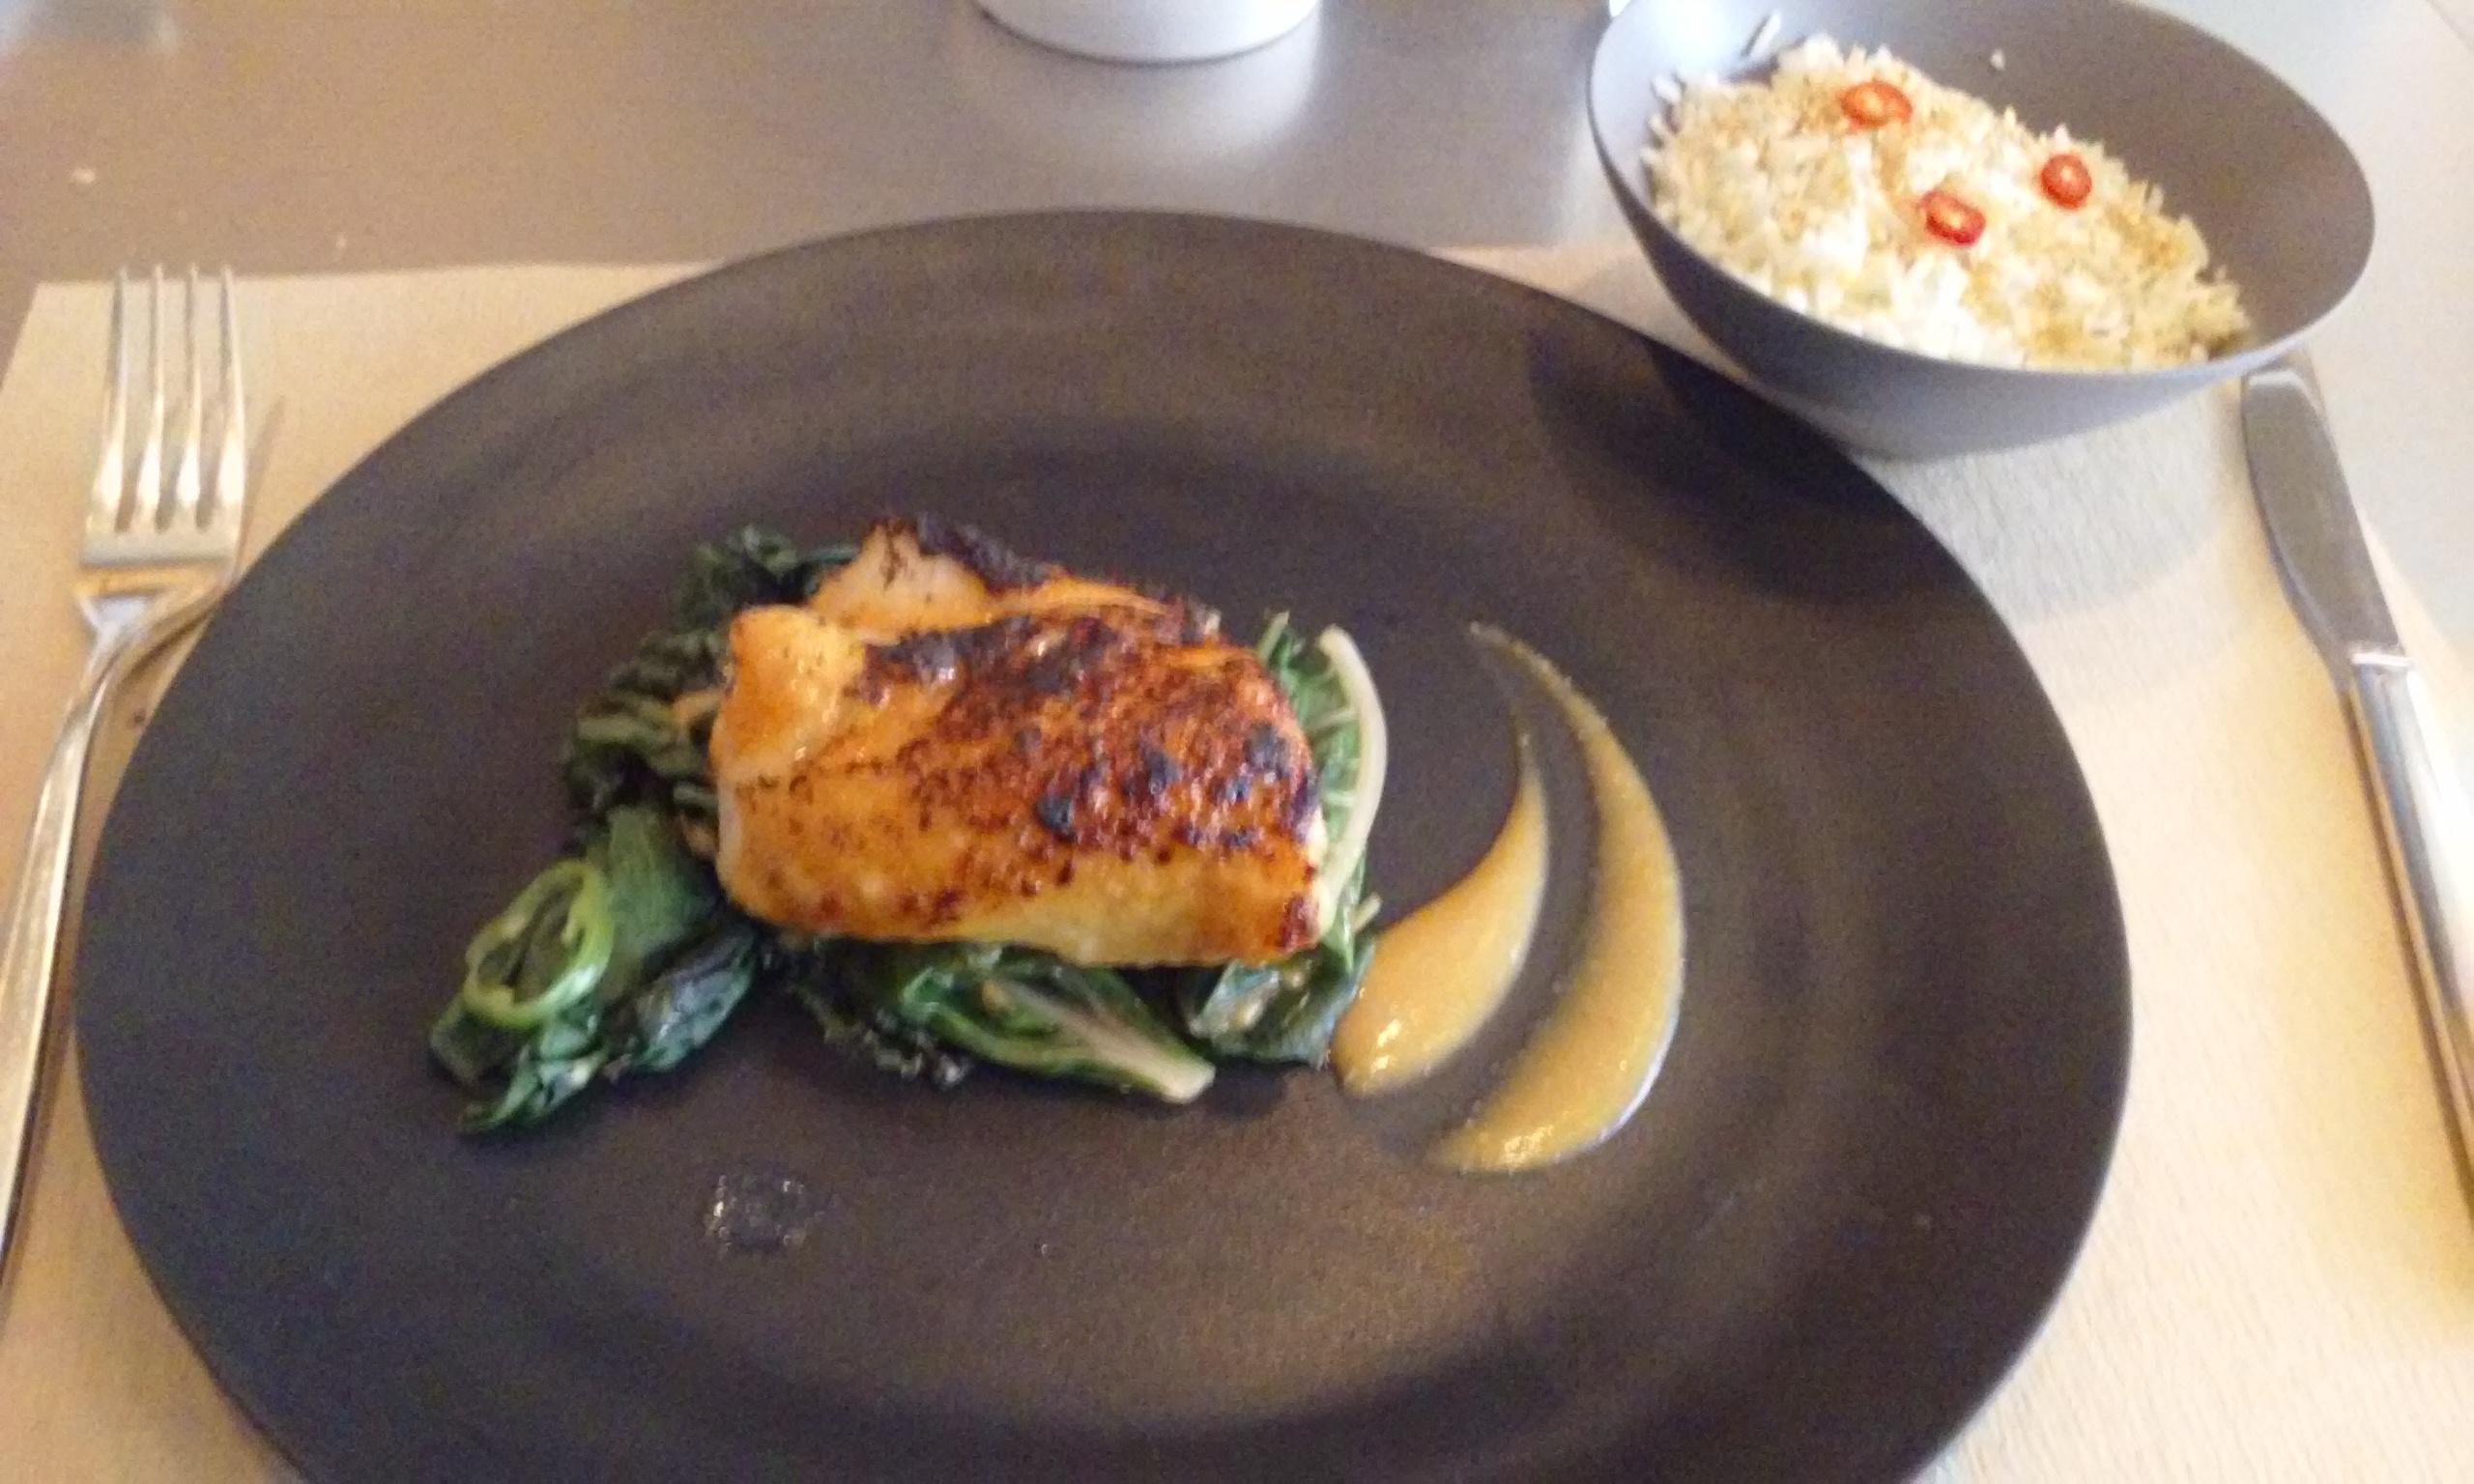 Hake at Jean Georges Nougatine. Cod. Excellent glaze but burned on the top. Bed of vegetab